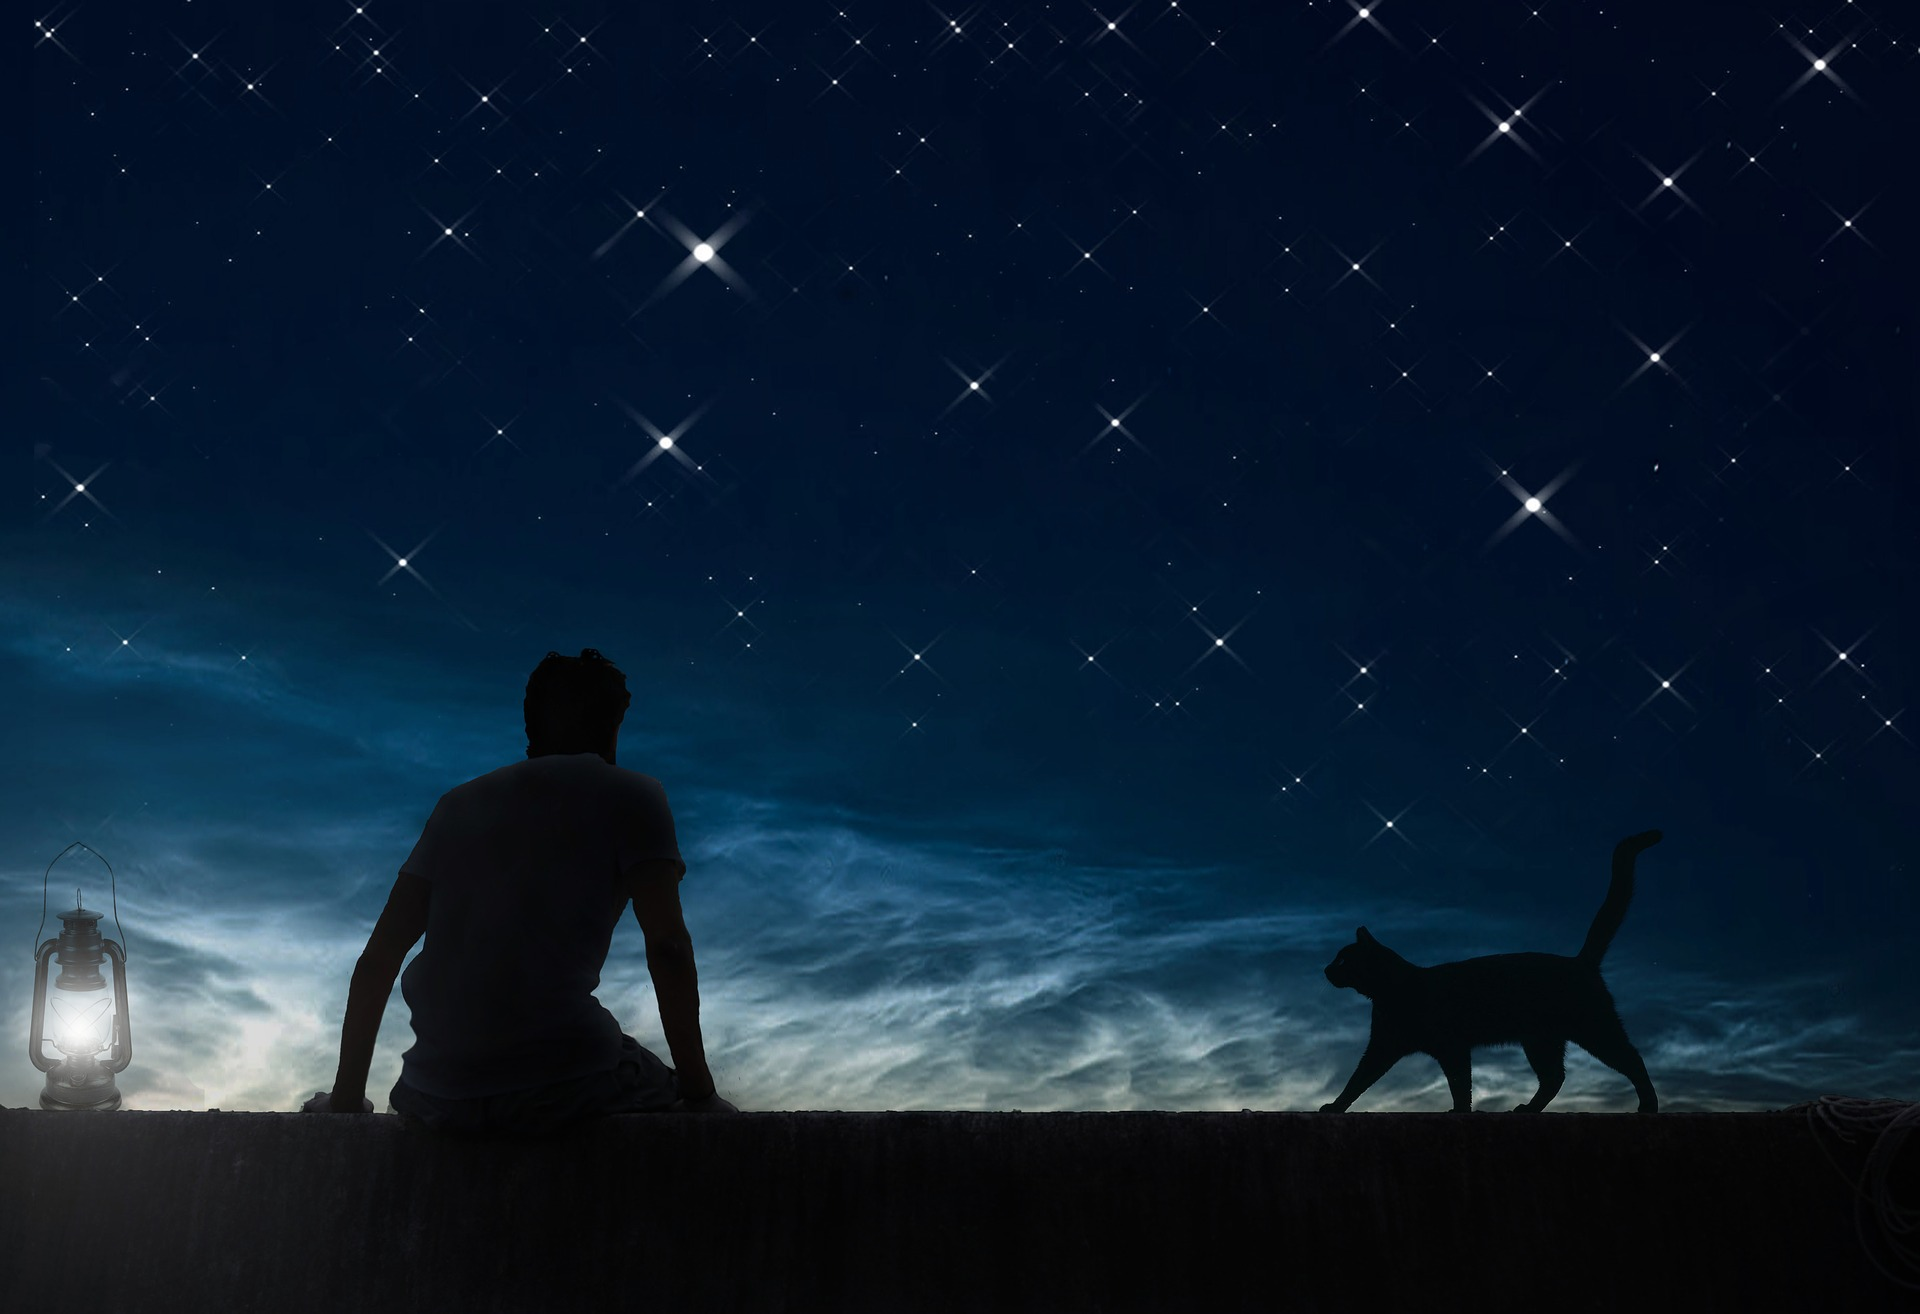 Man sitting at night with cat.